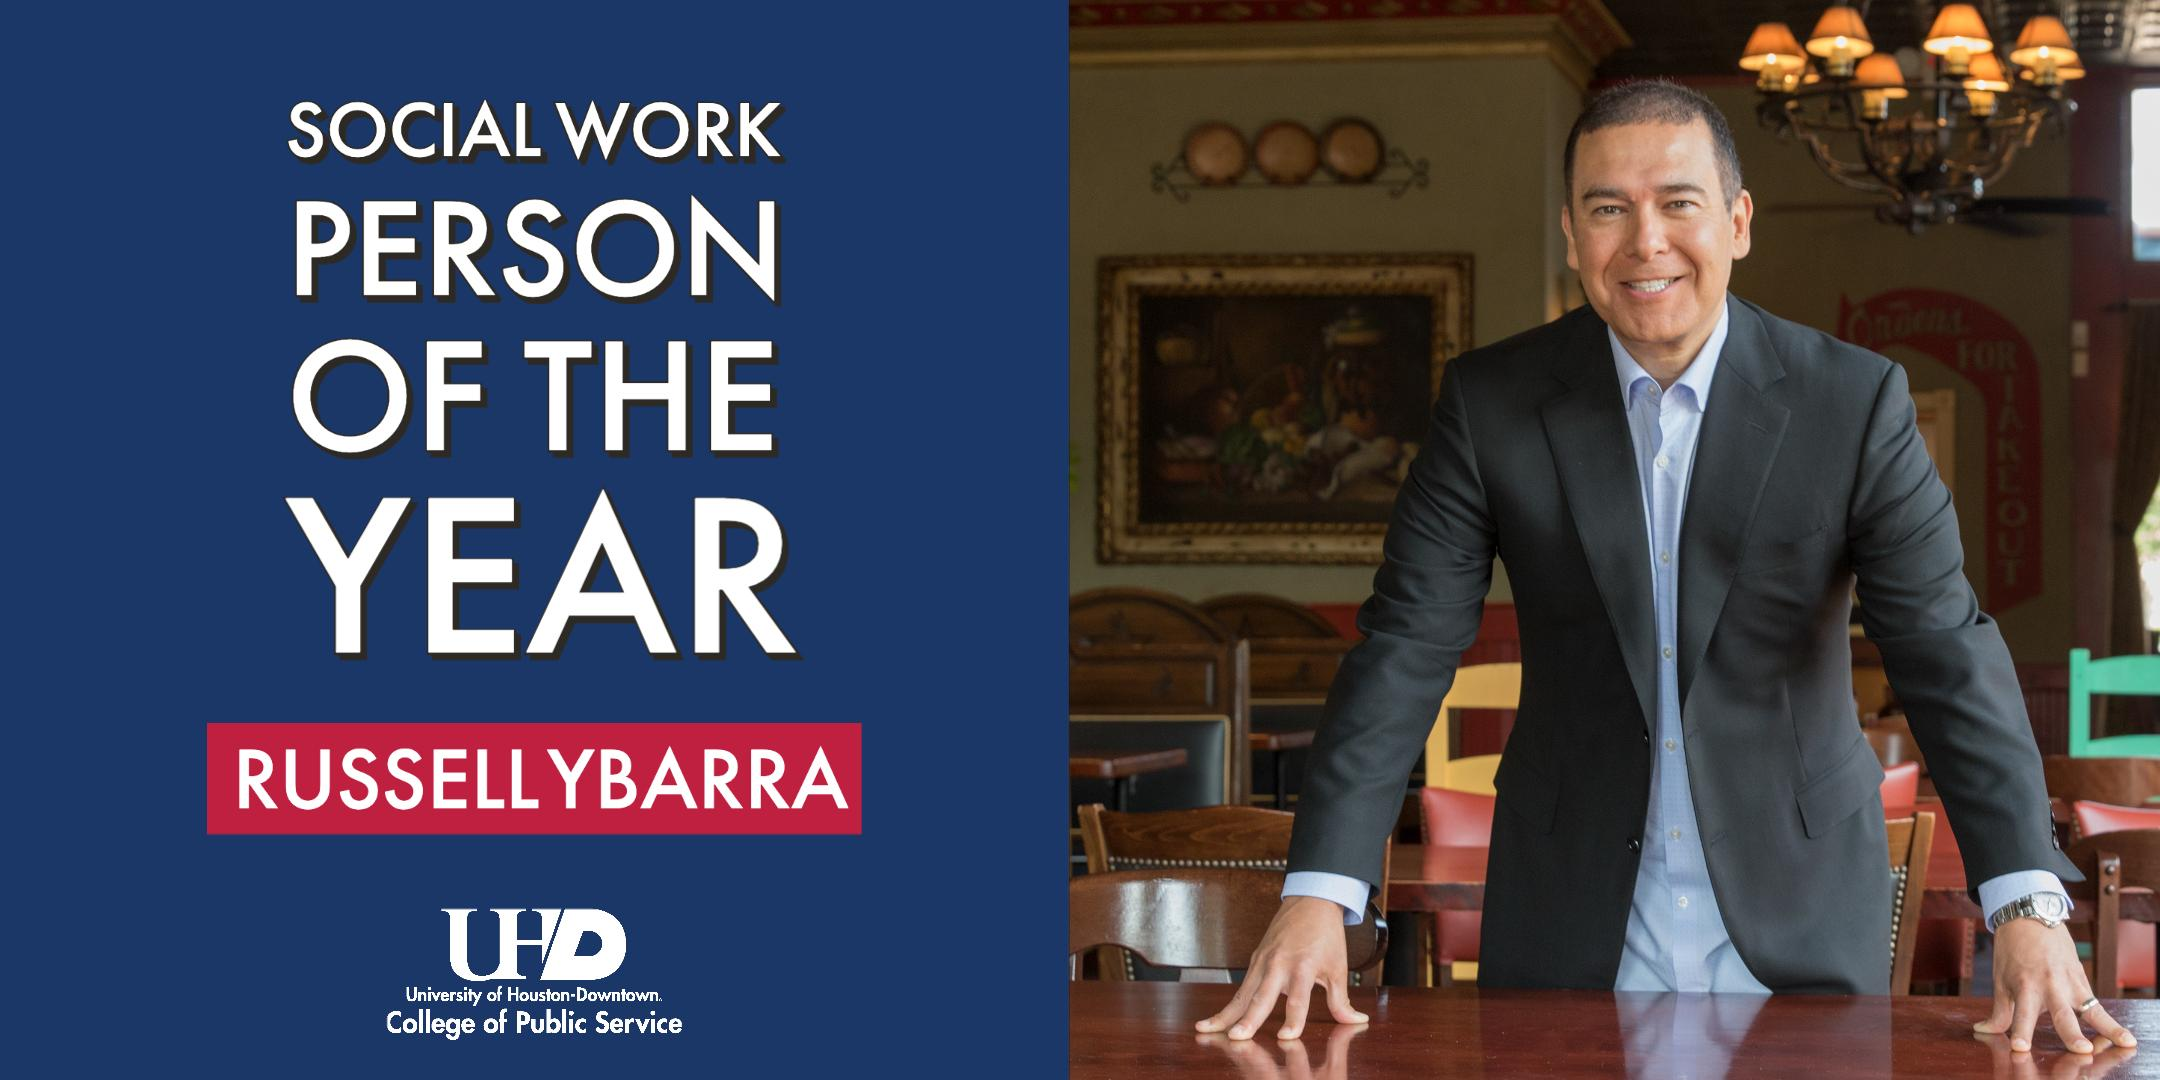 UHD's Social Work Person of the Year